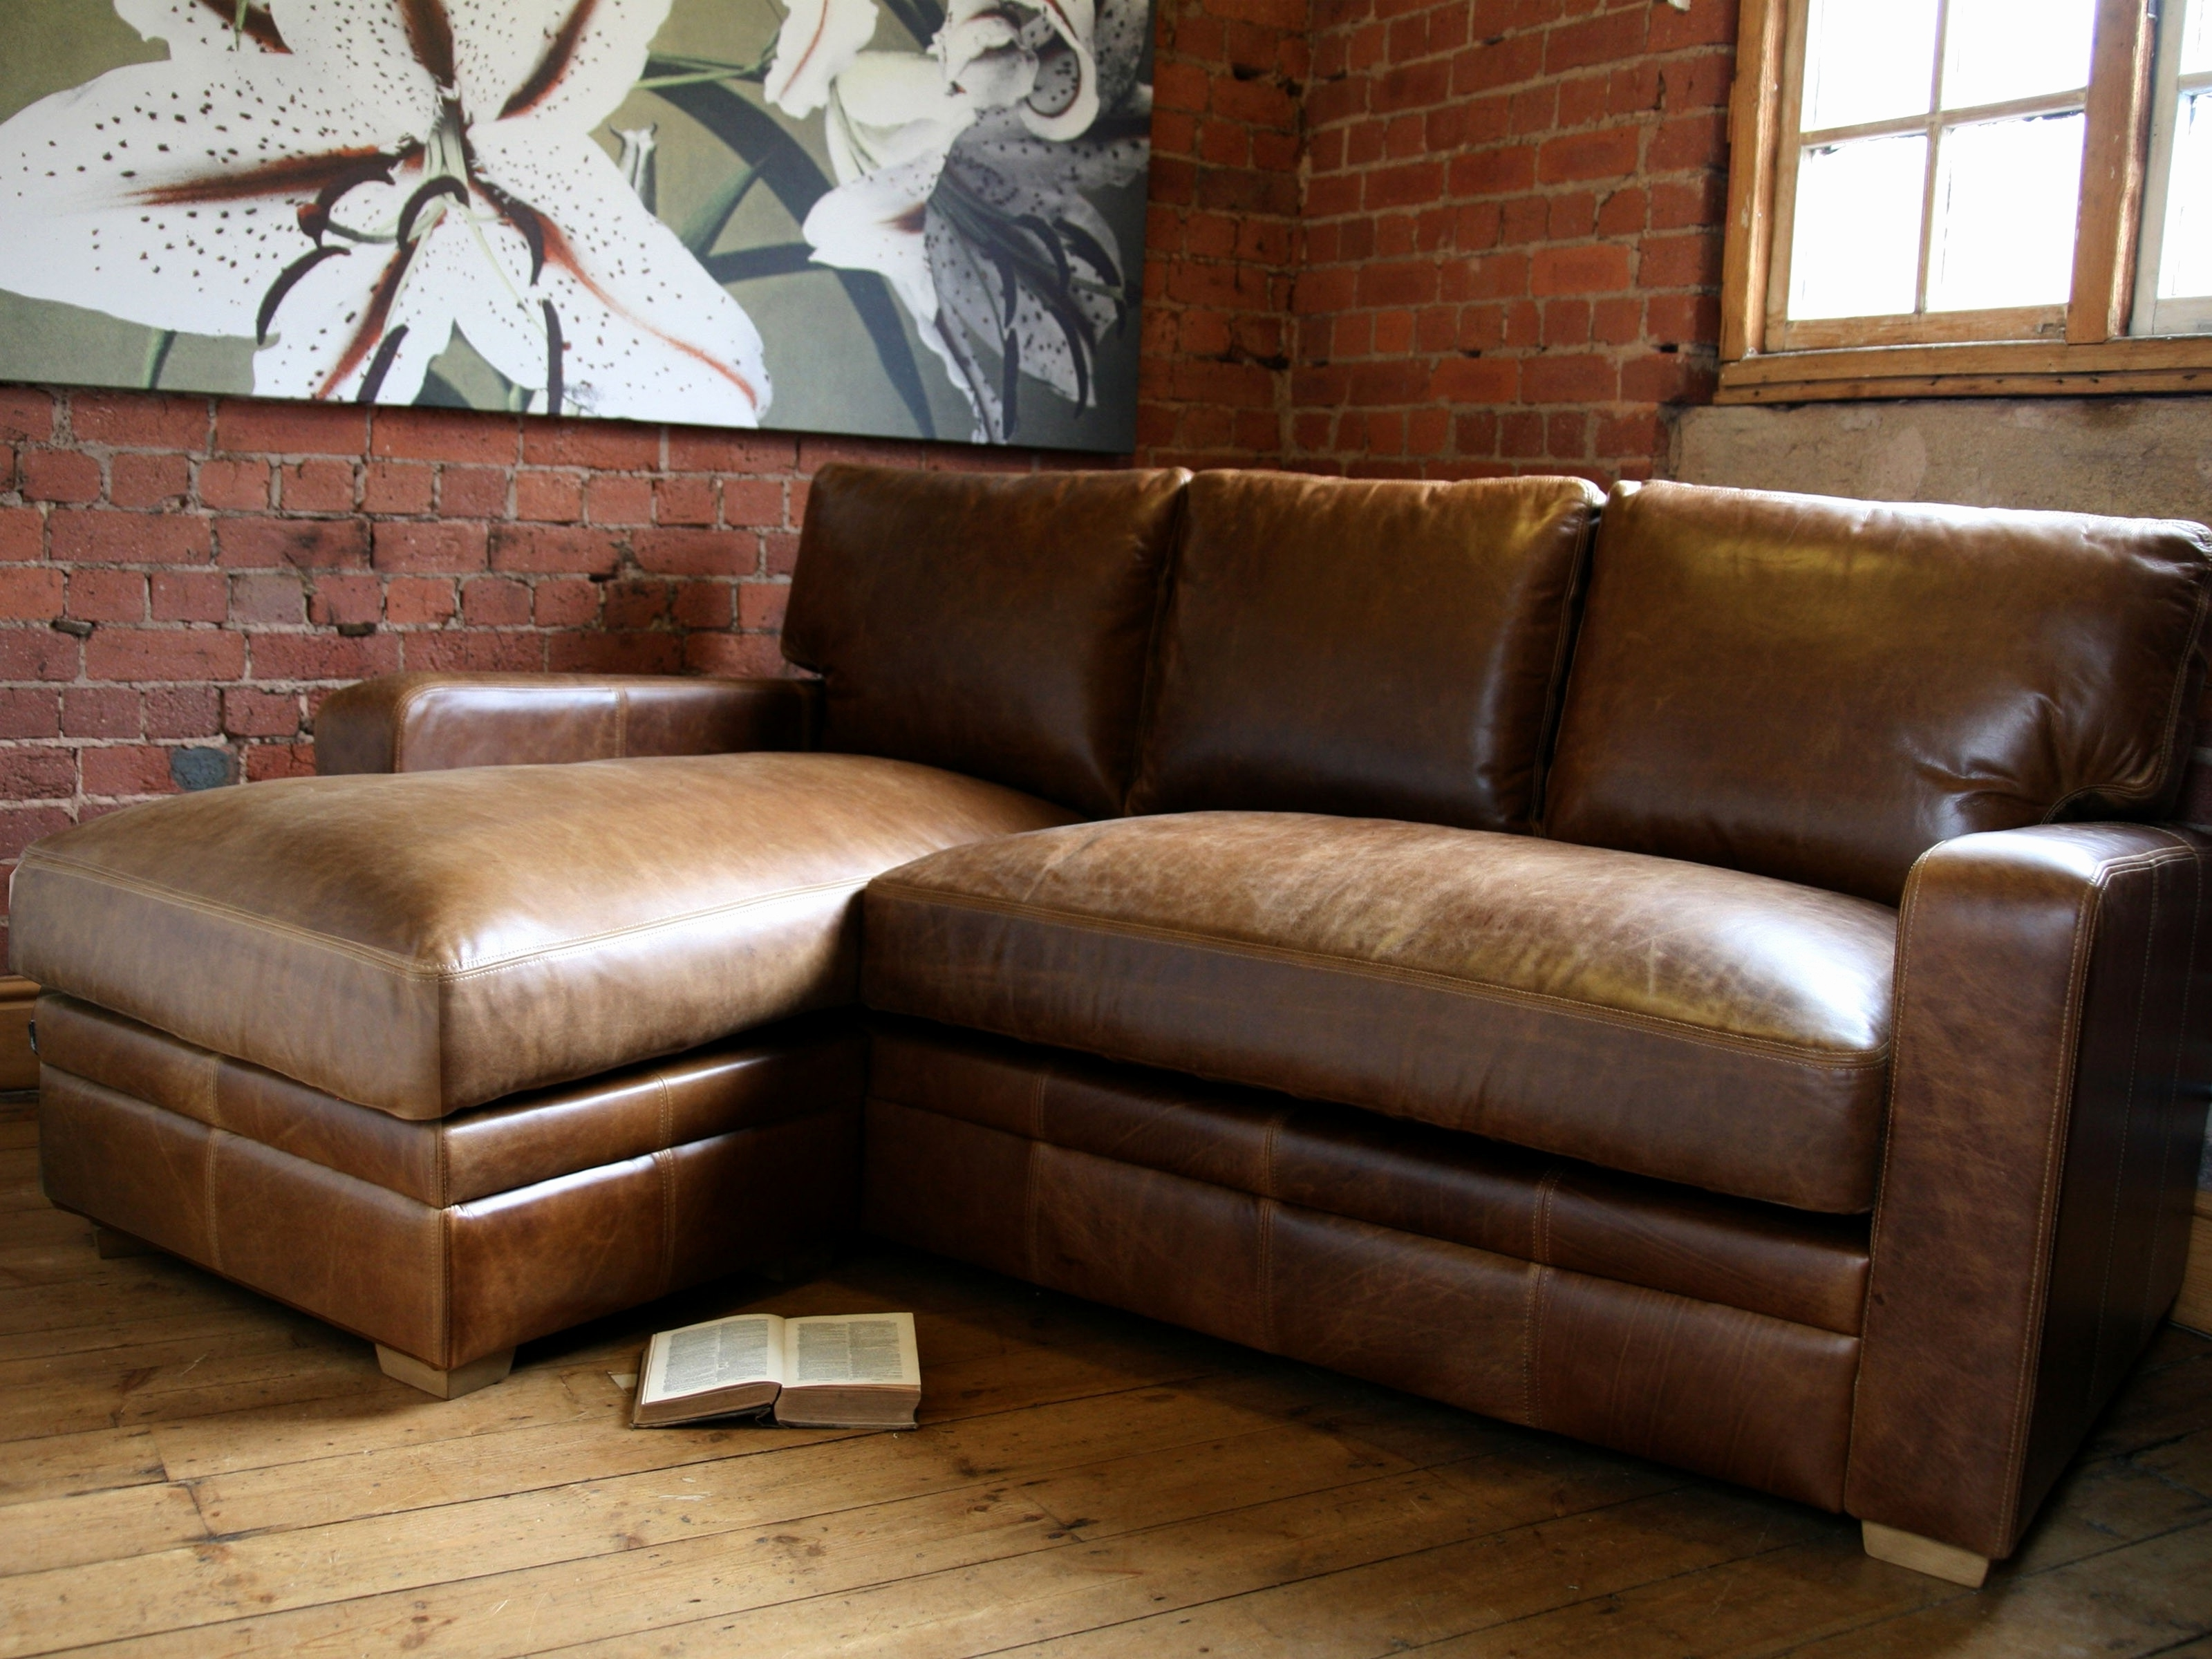 Leather Couches With Chaise Inside Most Current Awesome L Shaped Couch With Chaise 2018 – Couches And Sofas Ideas (View 10 of 15)